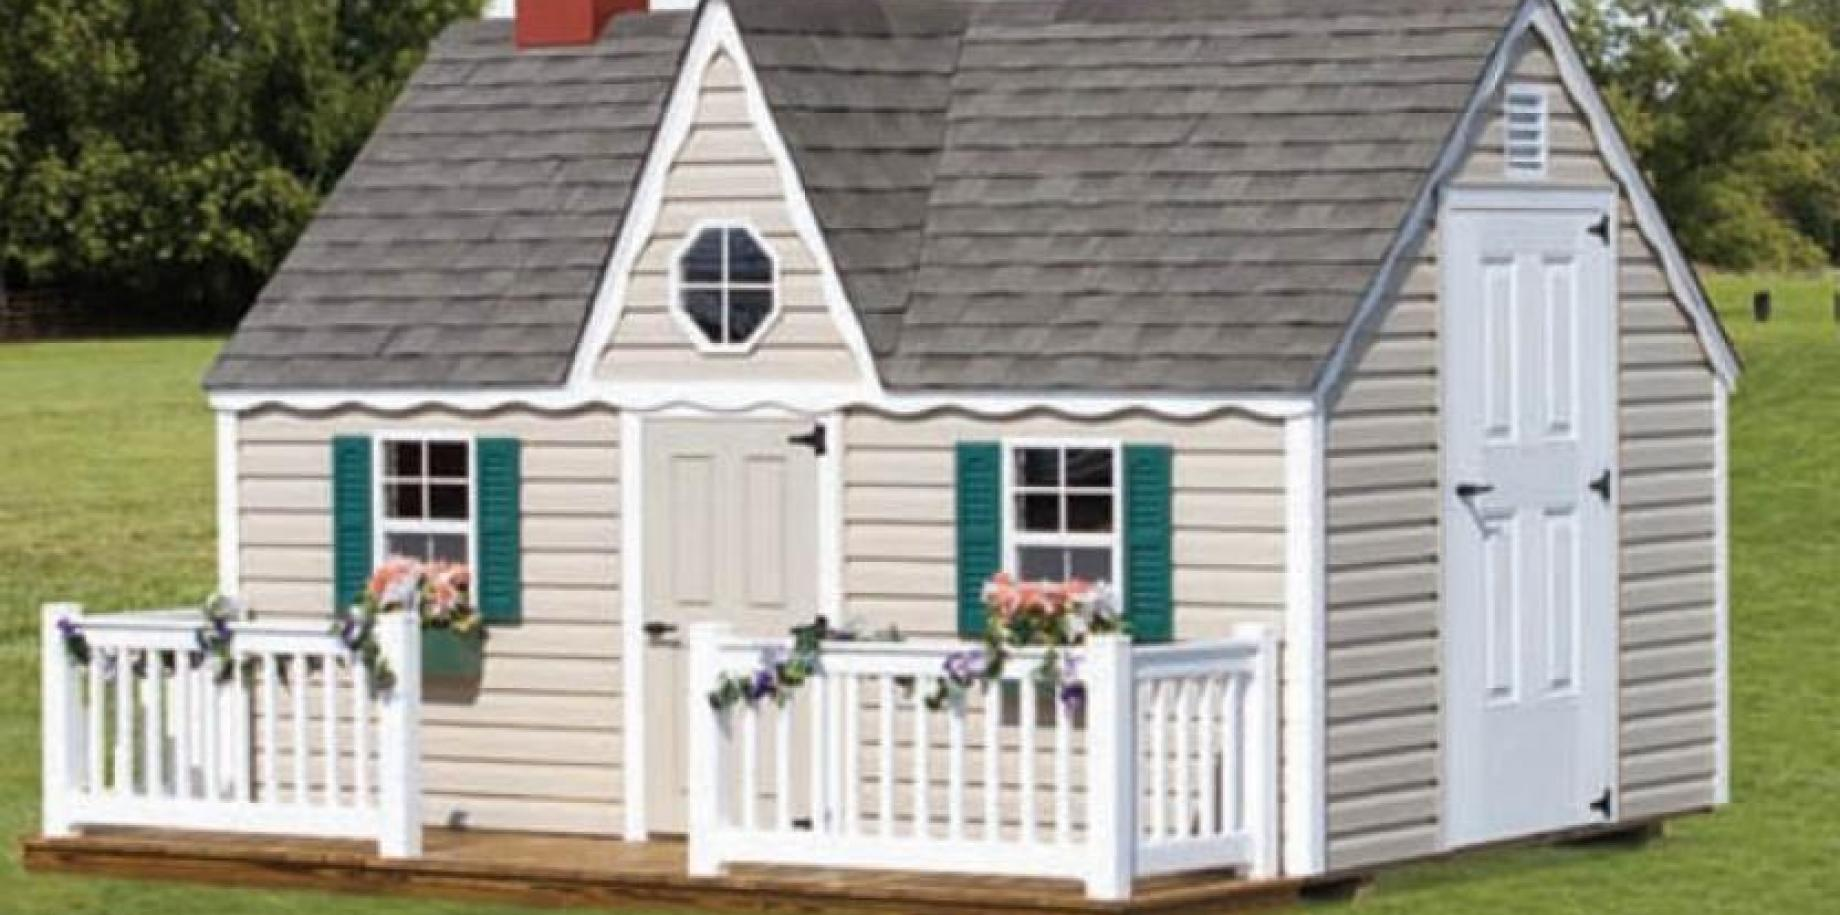 Victorian playhouse with vinyl siding.